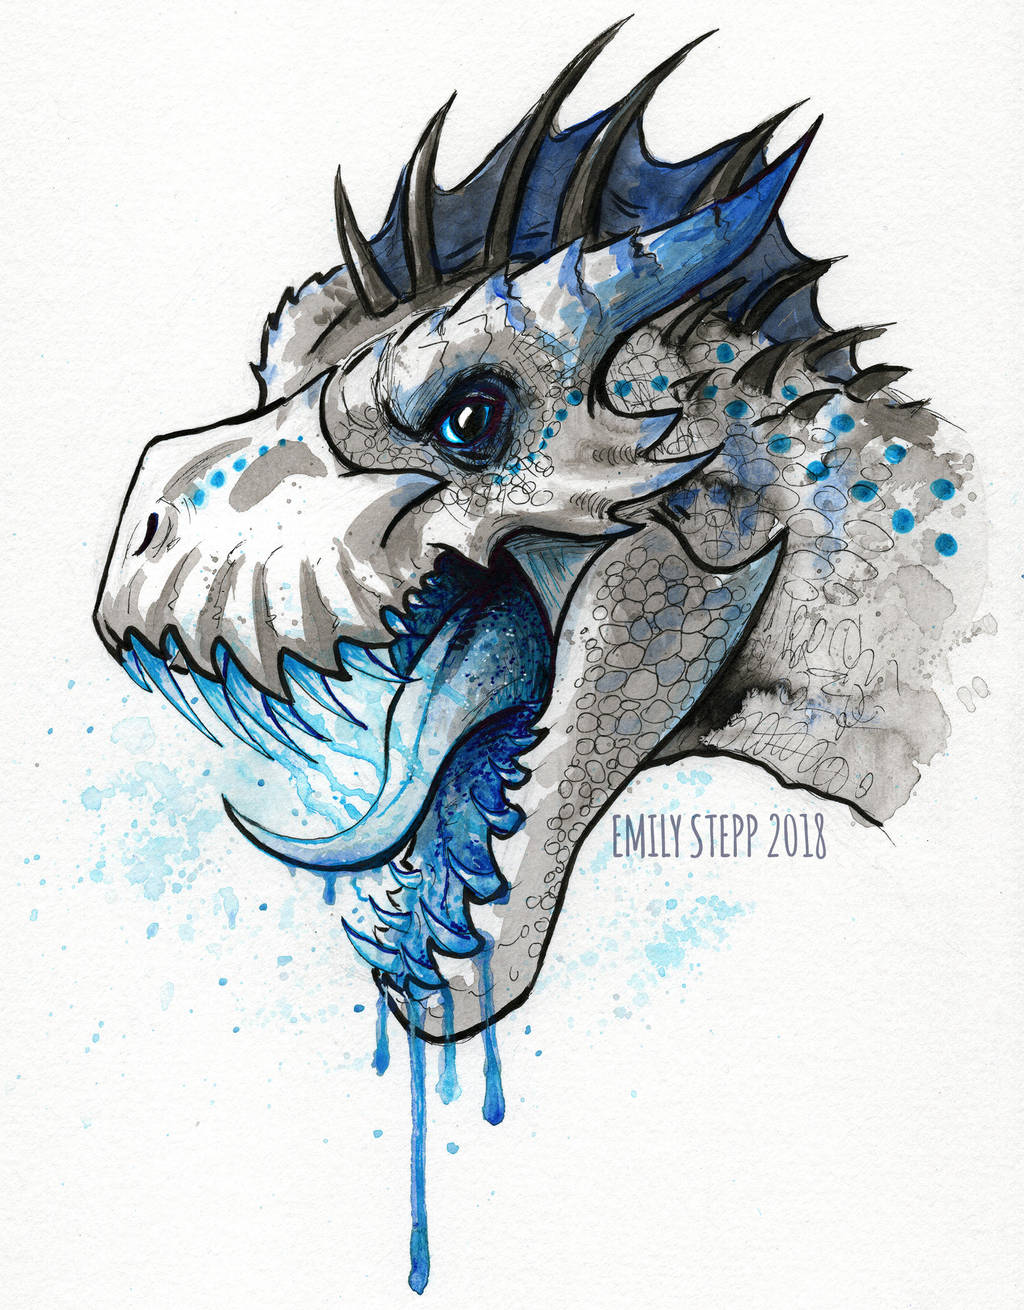 Inktober 2018 Day 6 Drooling by EmilyStepp